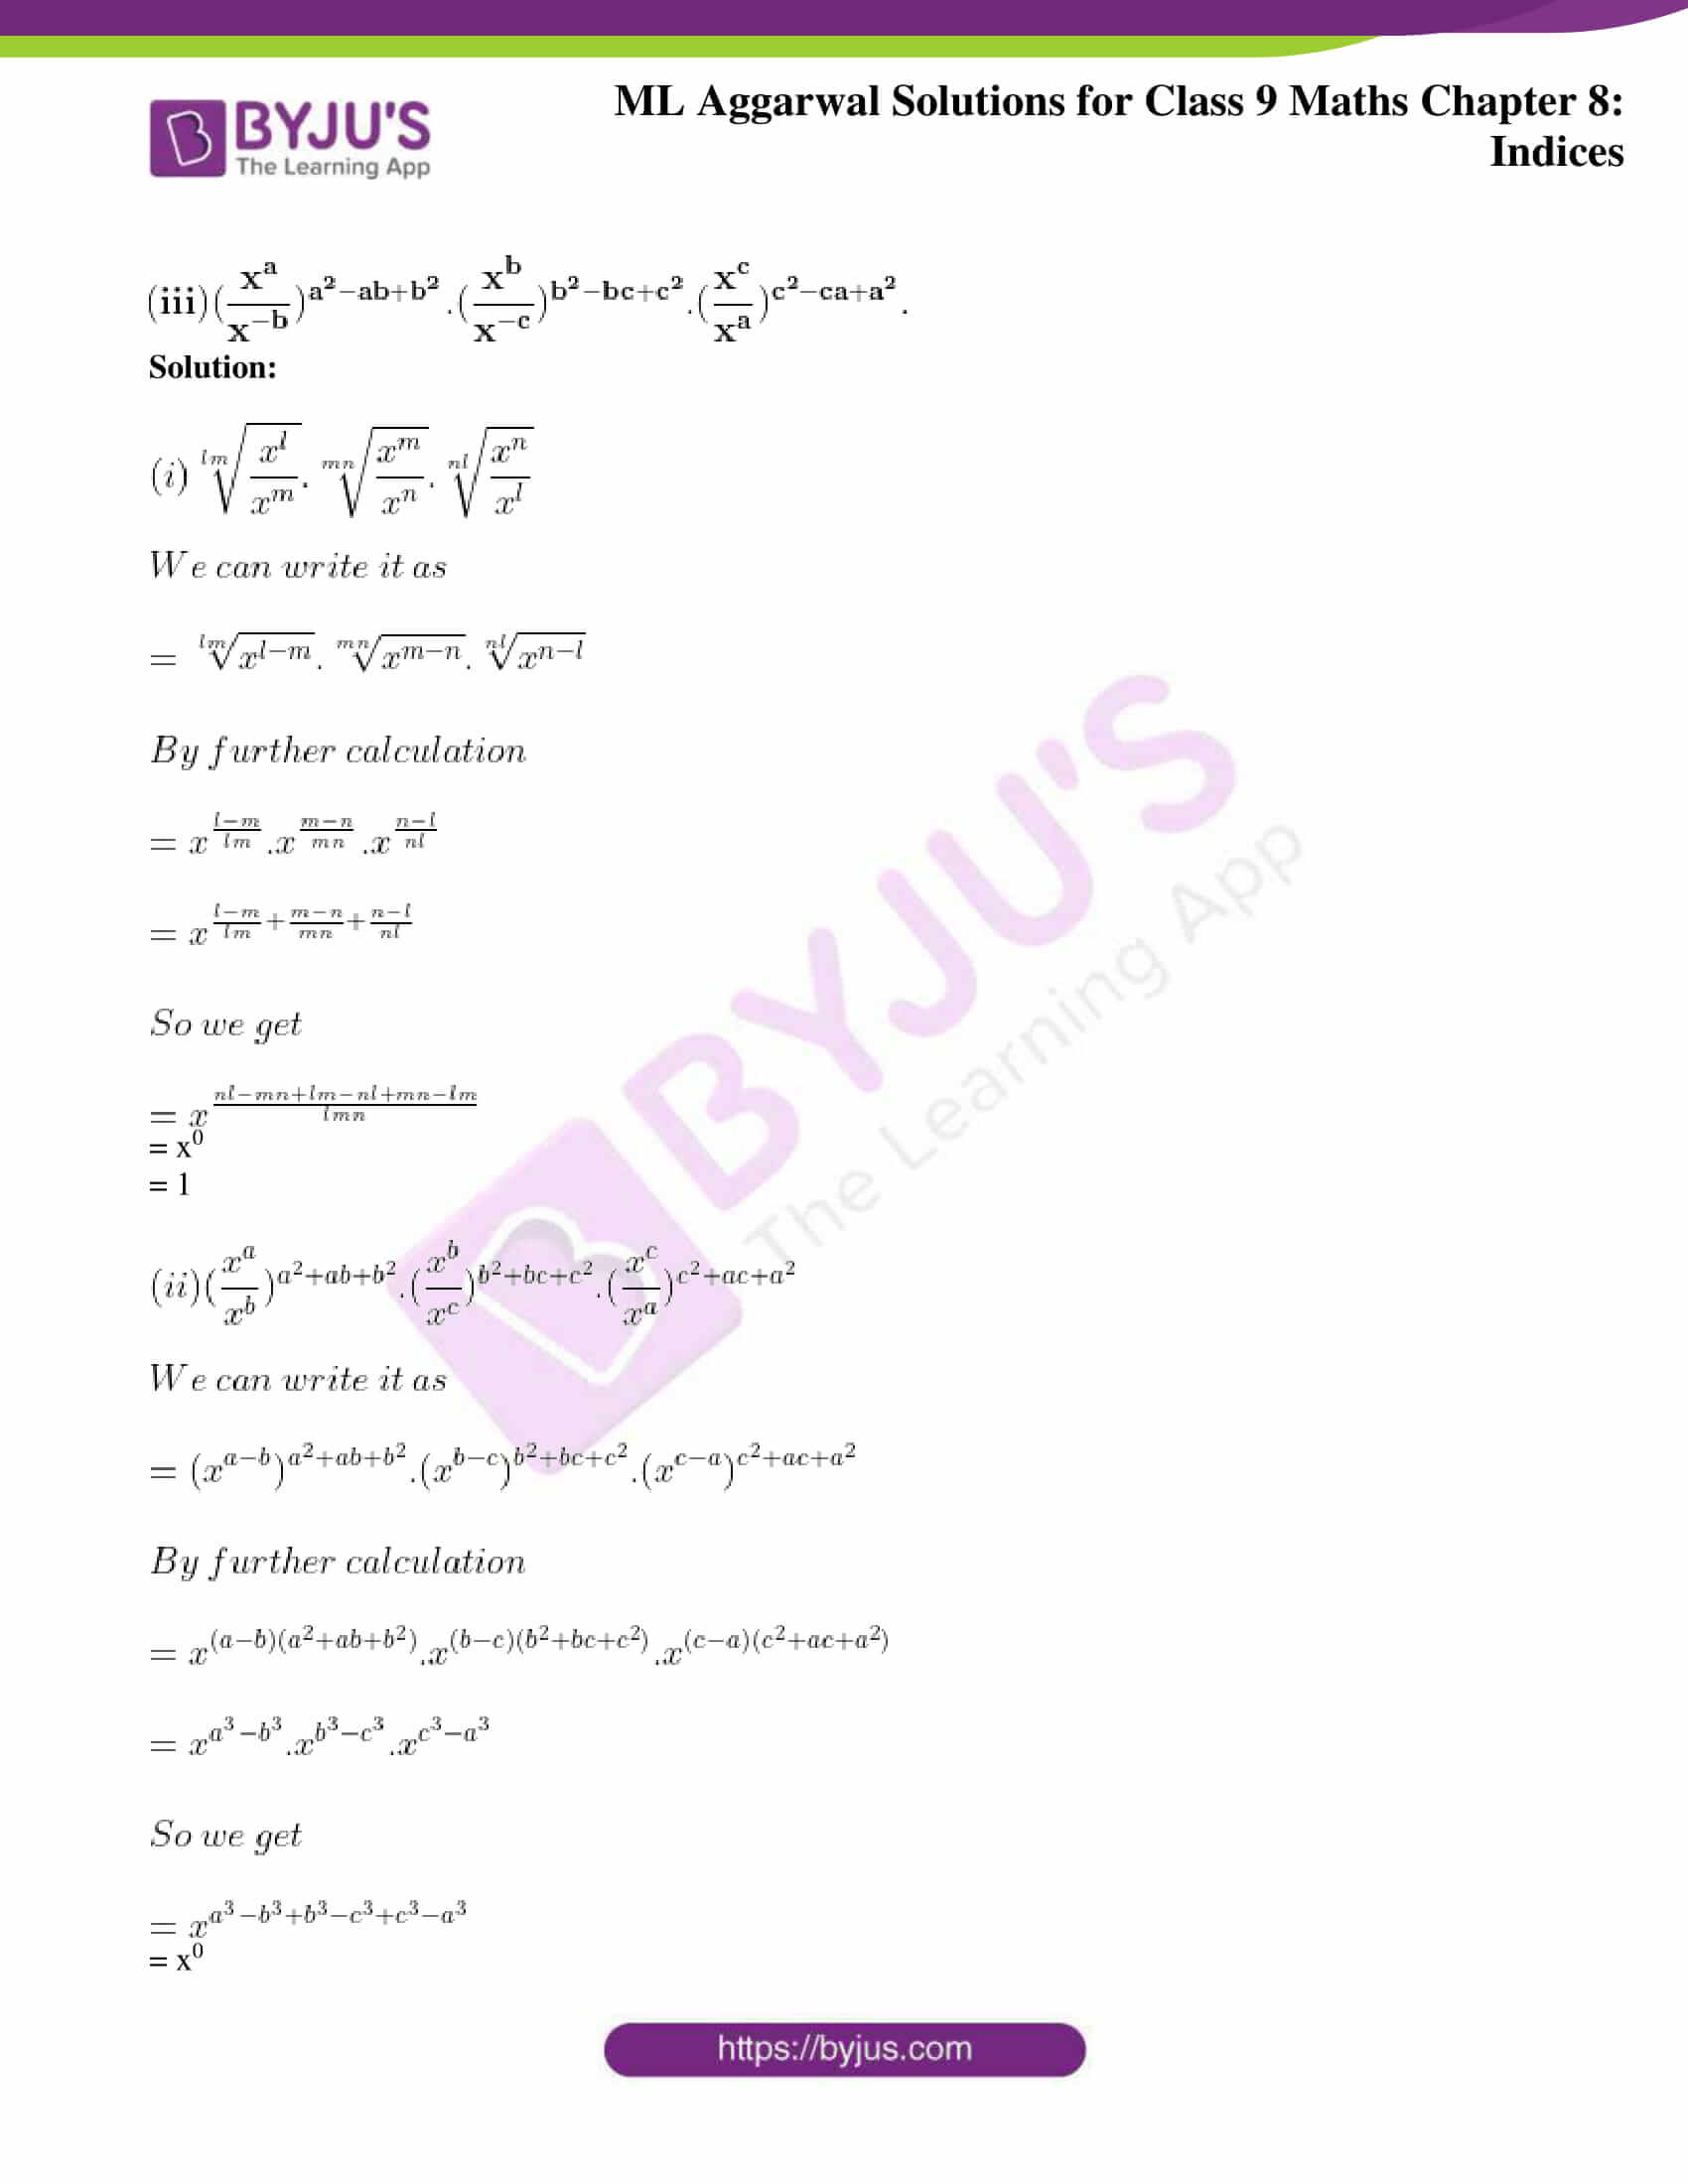 ml aggarwal solutions for class 9 maths chapter 8 21